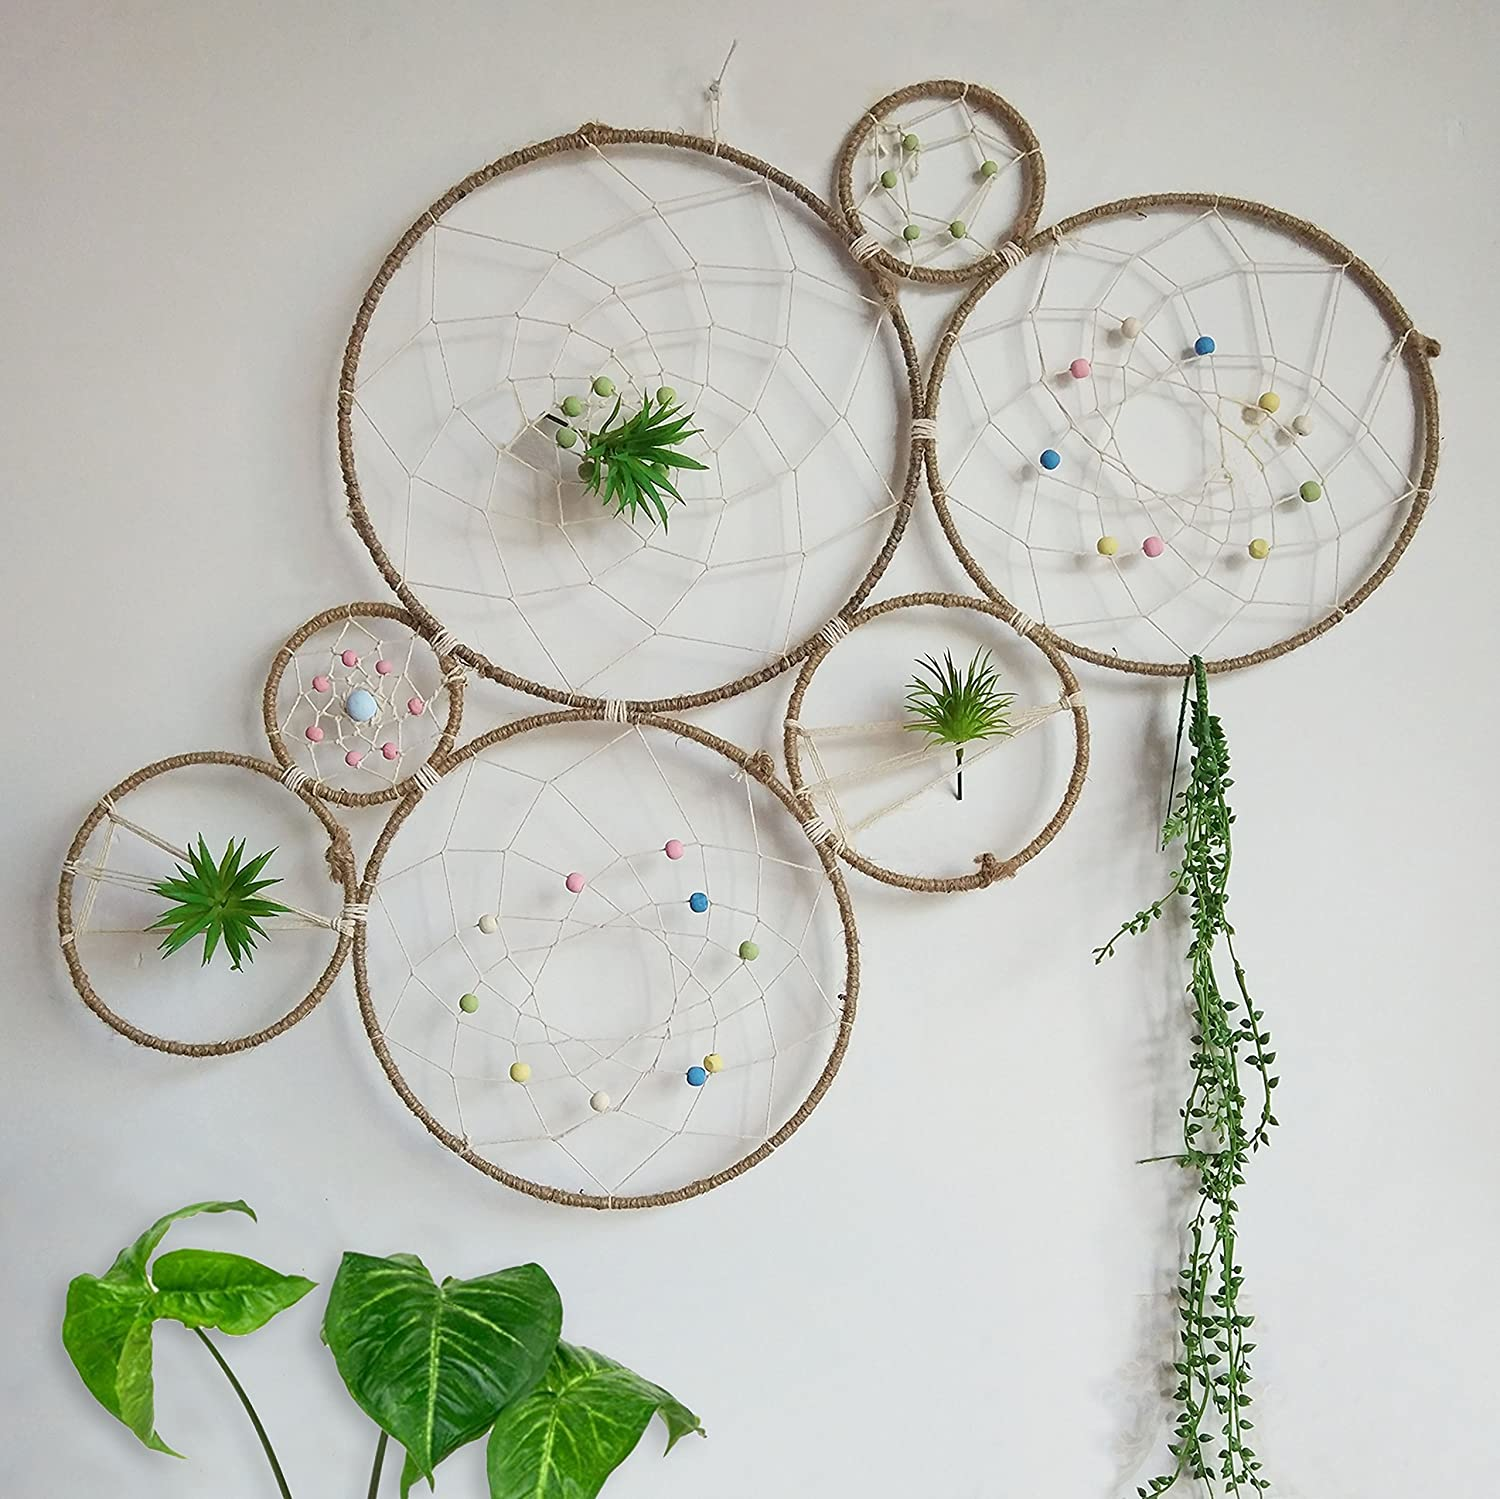 RISEON DIY Large Boho Tillandsia Dream Catcher Natural Air Plant Wall Hanger Holder Stand, Dreamcatcher Set-Wall Display Accent-Rustic Wedding Backdrop, with Faux Artificial Succulent Cactus Plants